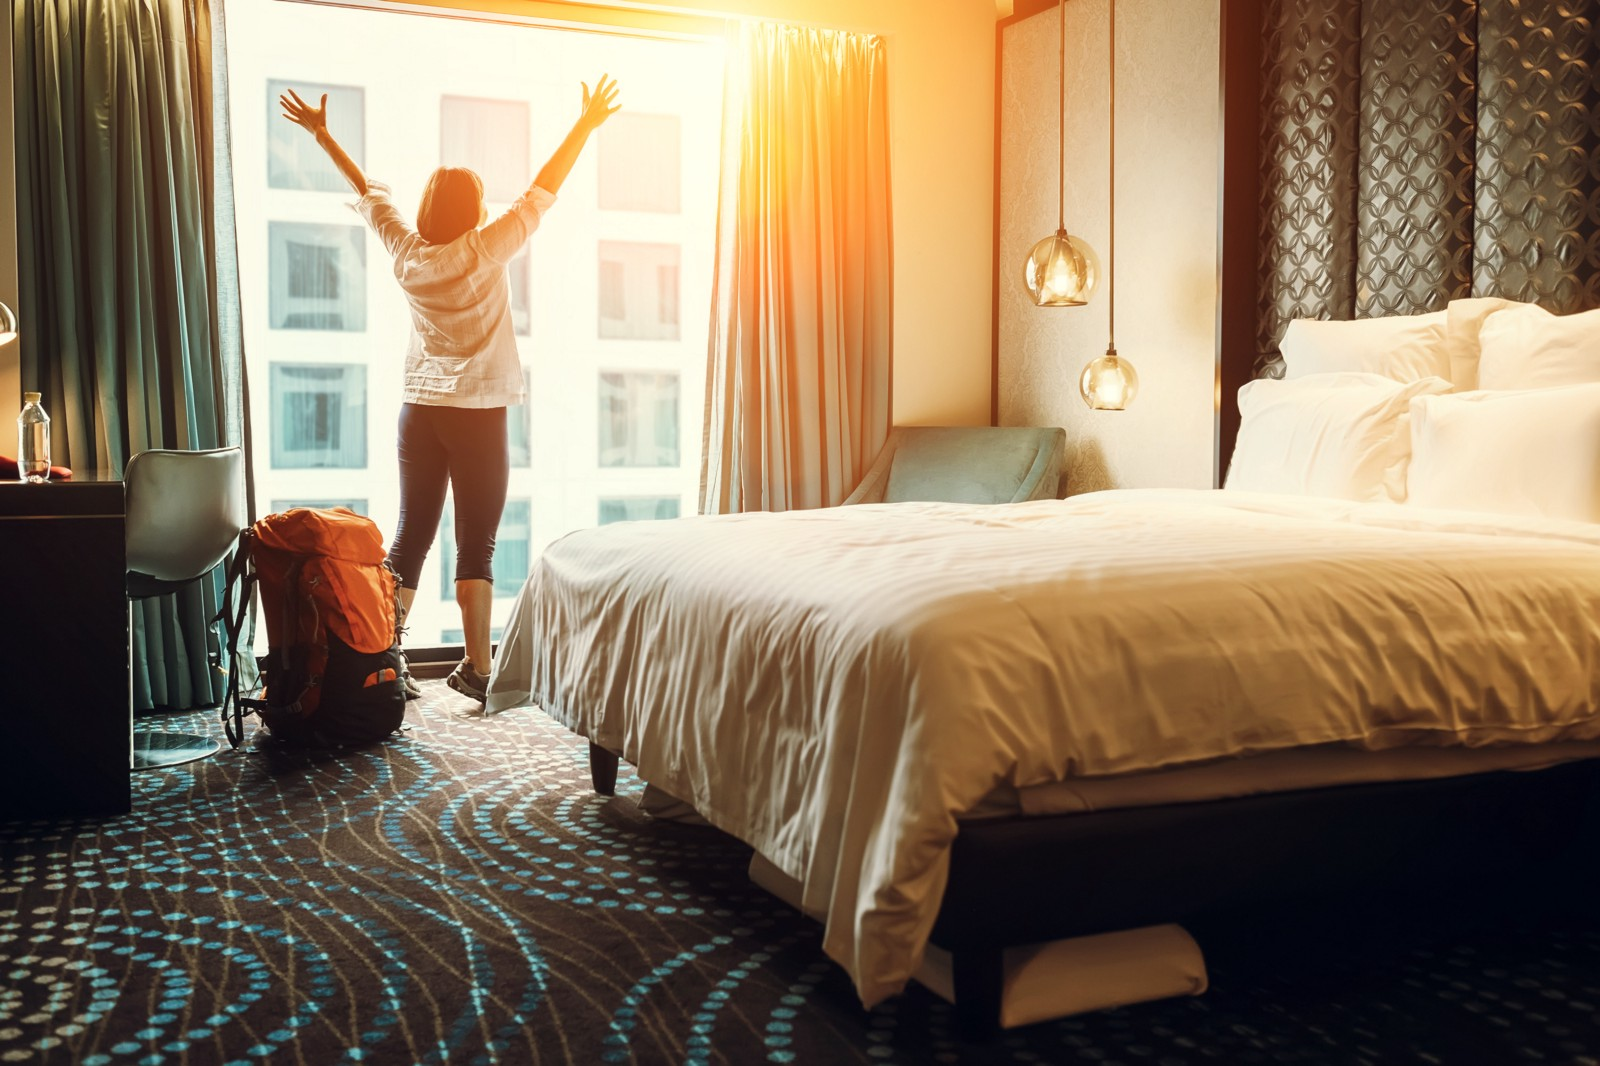 Accommodation: It's Not a Dirty Word images